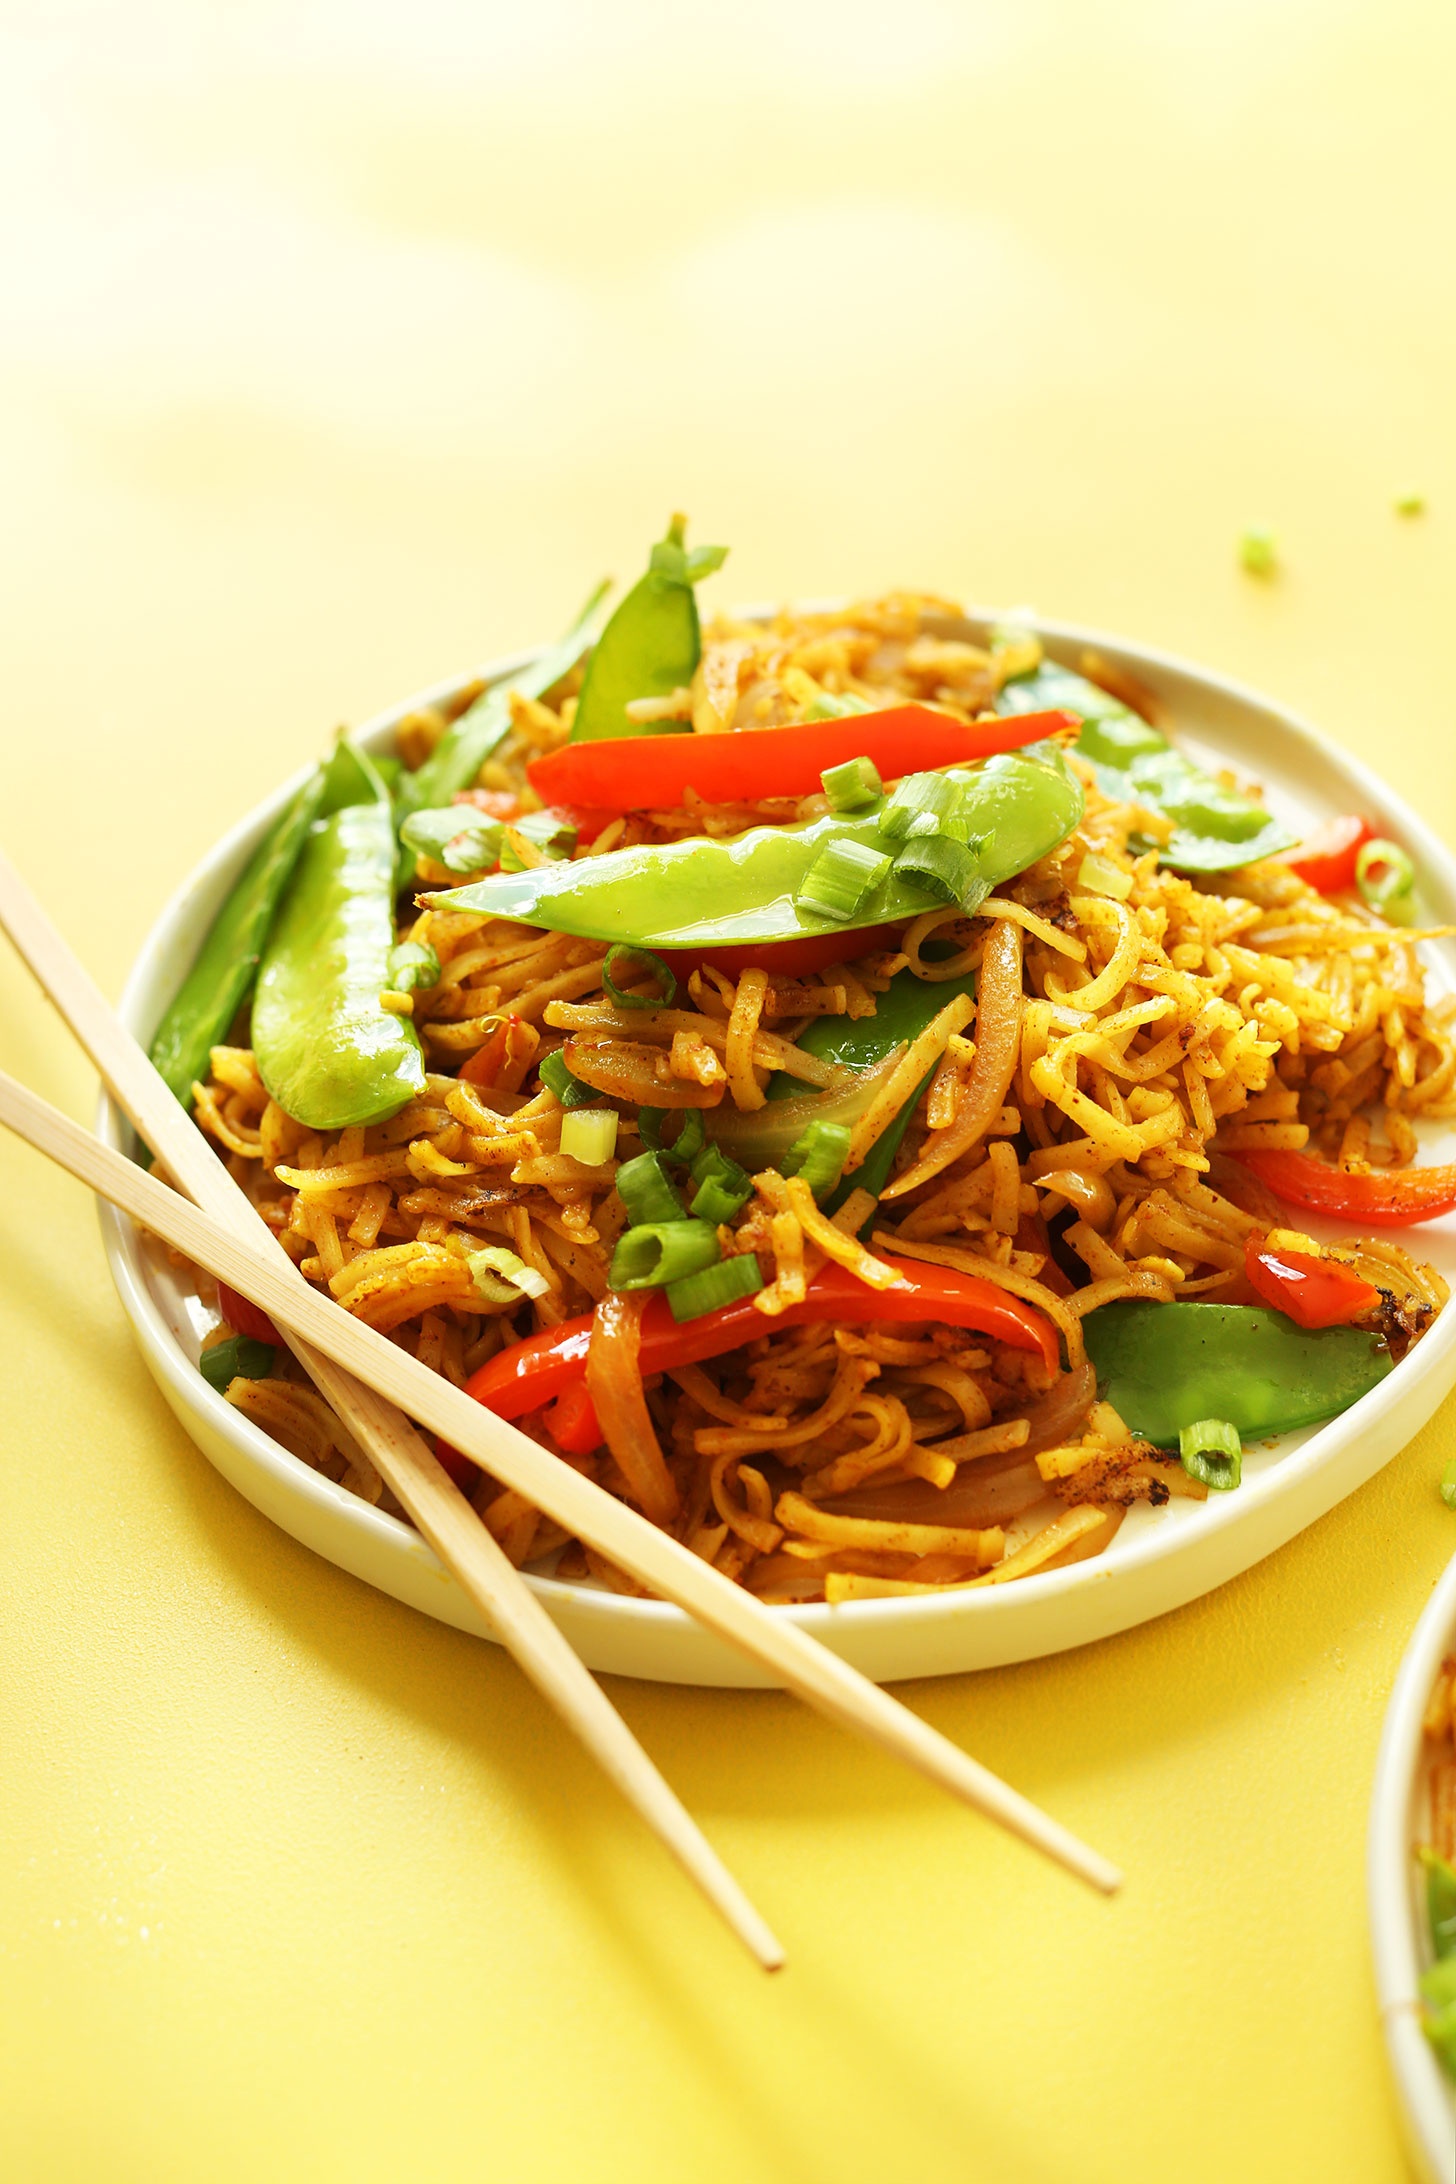 Vegan singapore noodles minimalist baker recipes plate of our singapore noodles recipe for a simple gluten free vegan dinner forumfinder Images